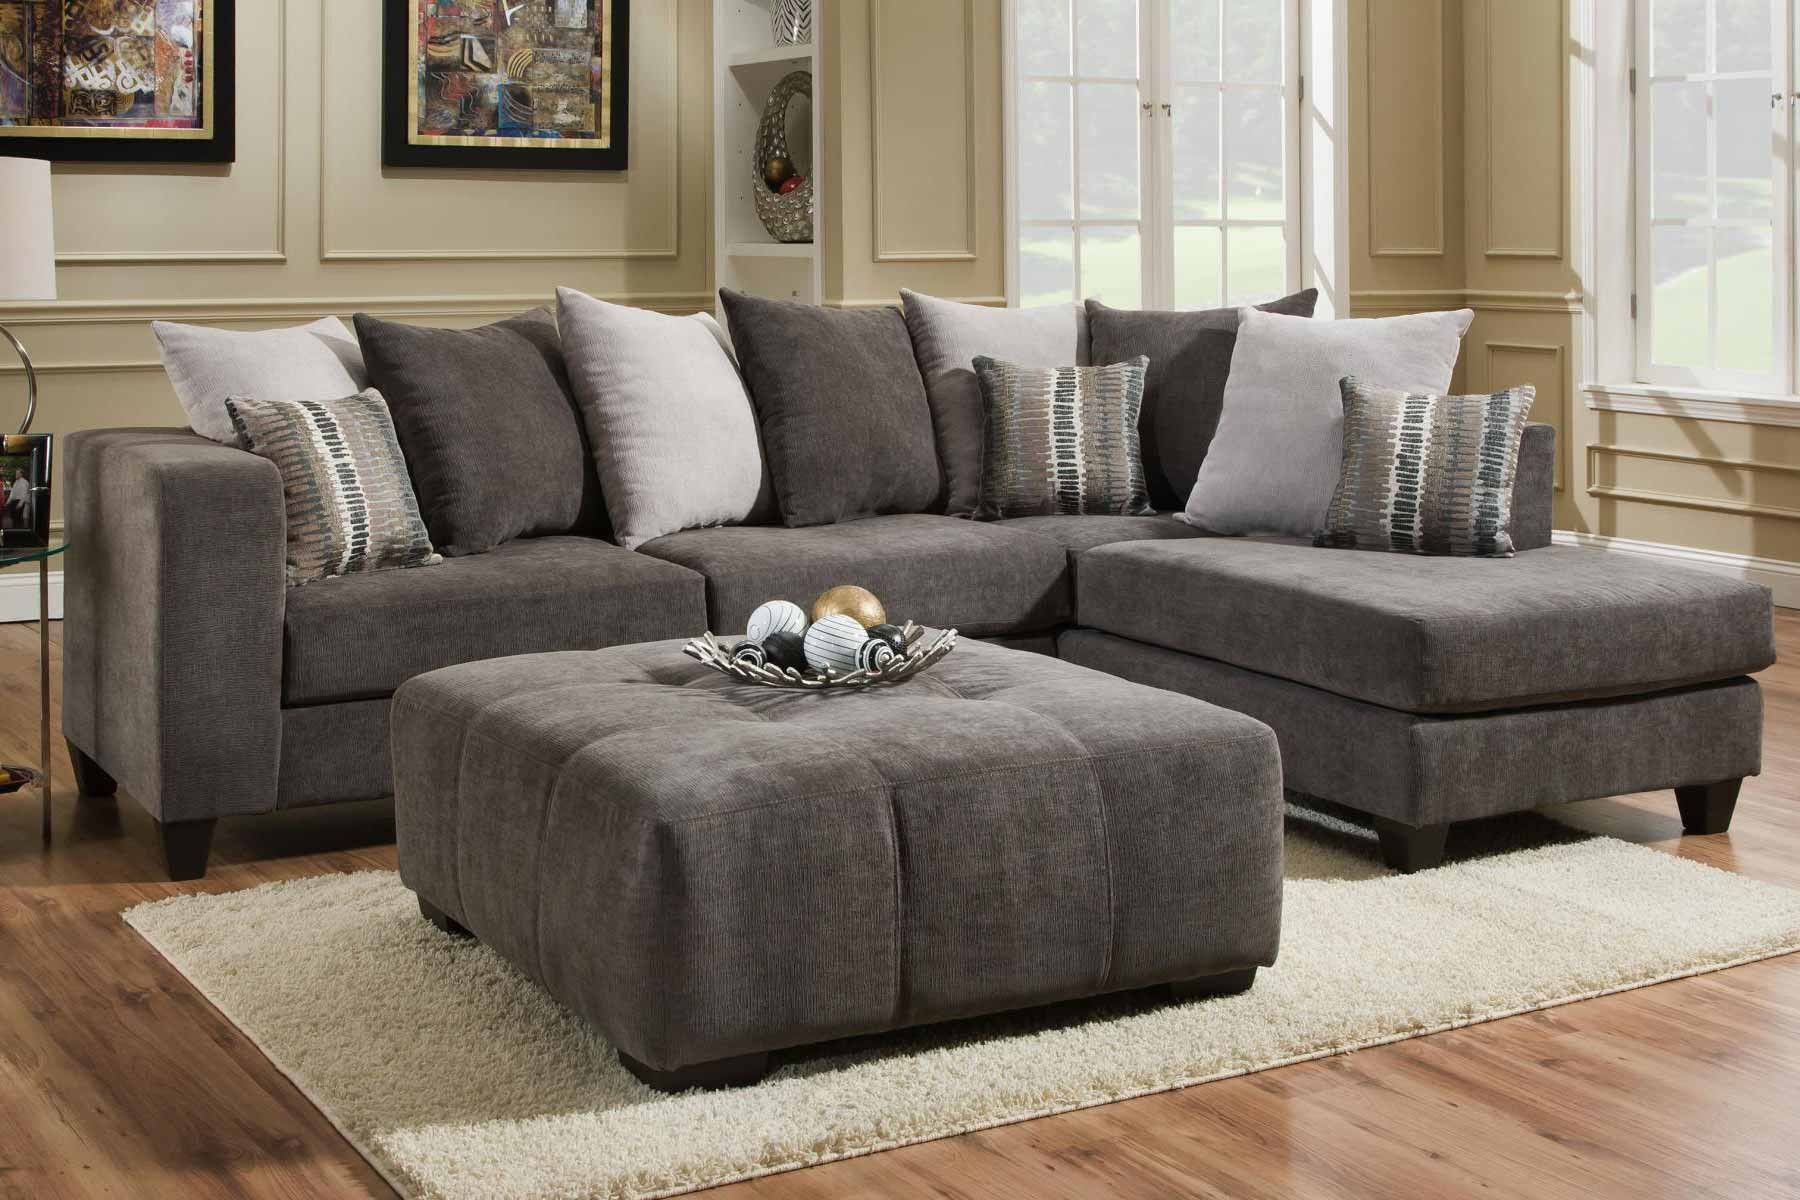 Heavenly Mocha Sectional Sectional Sofa Chelsea Home Furniture